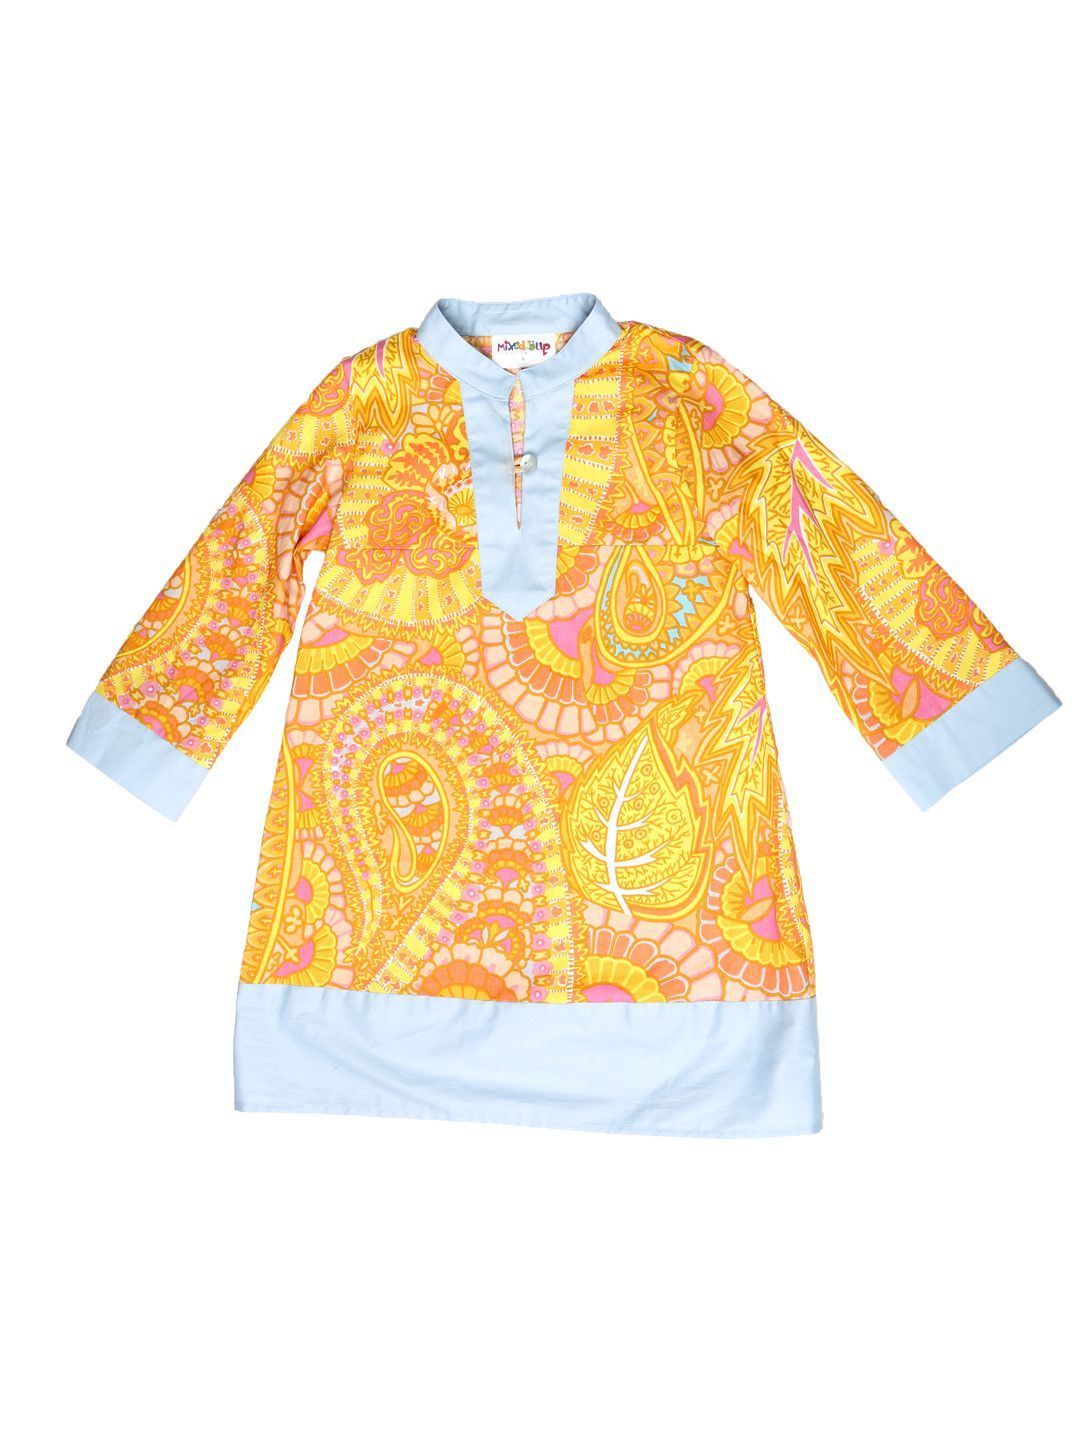 Indian inspired print dress yellowblue paisley print products